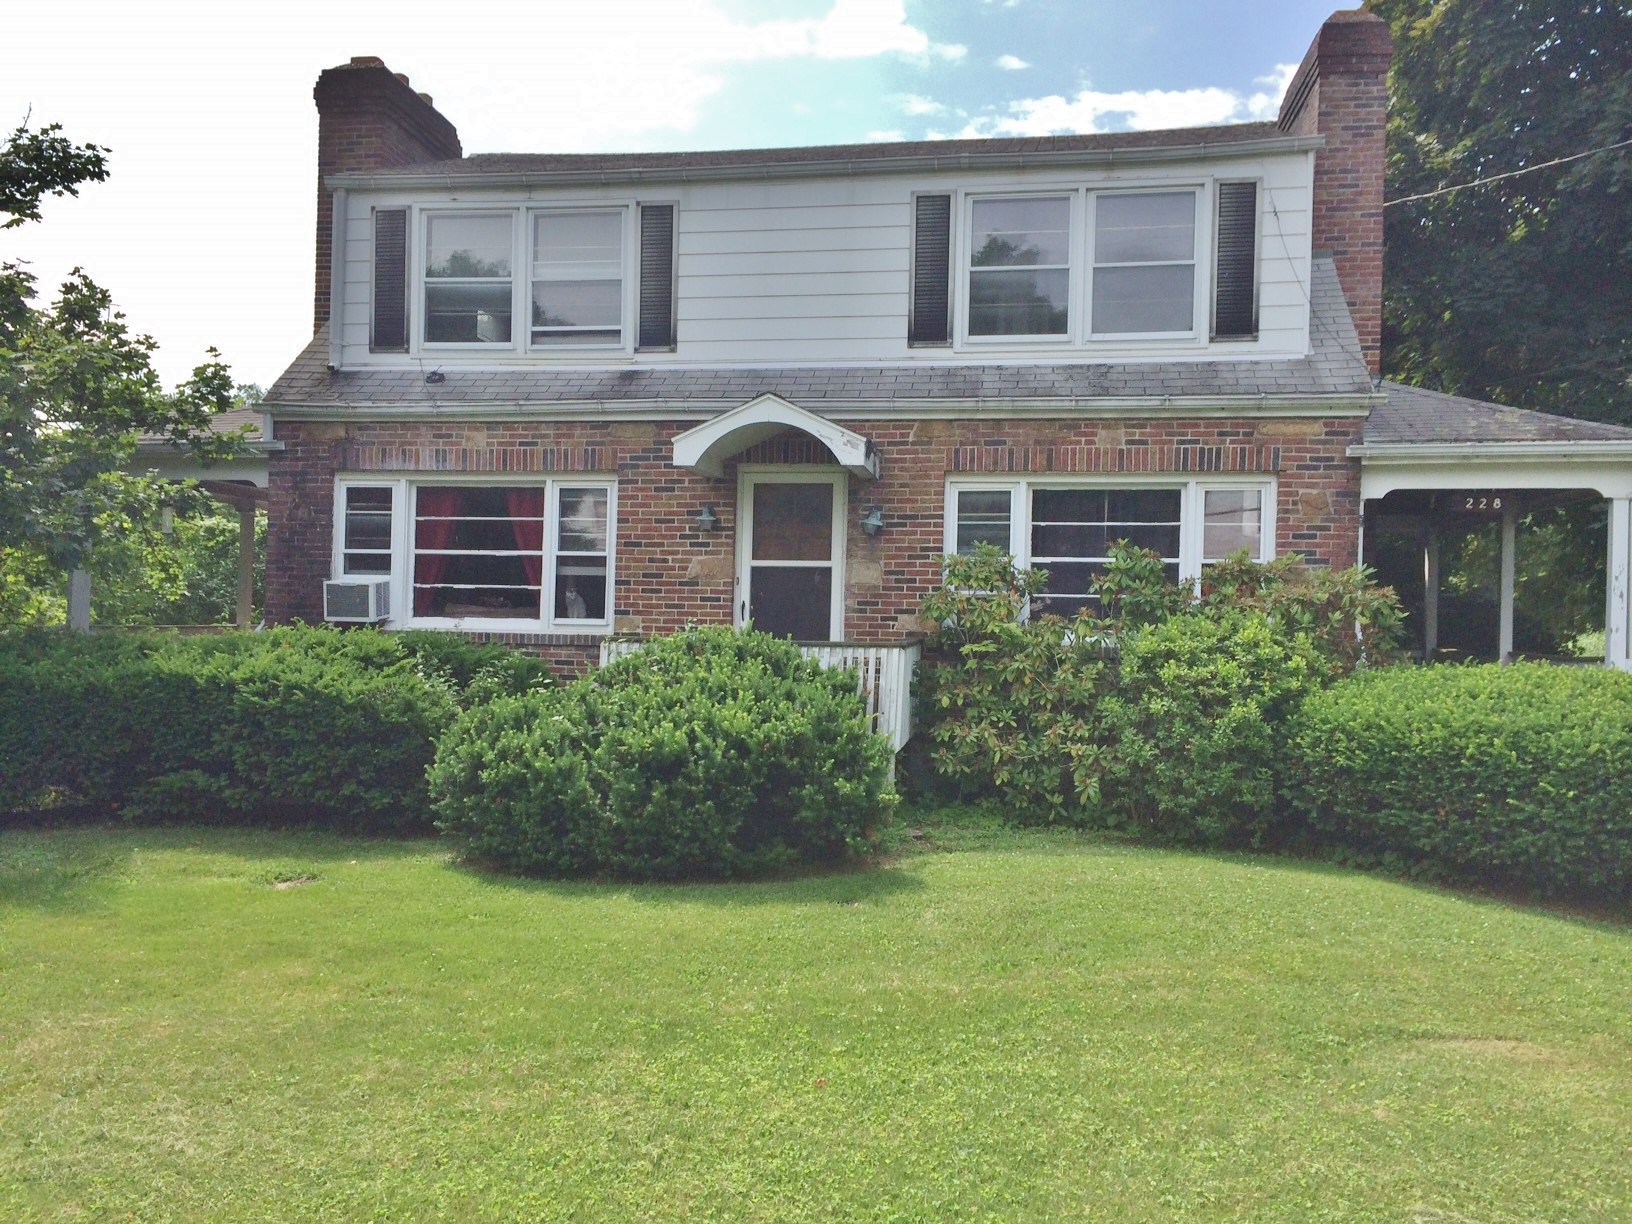 2-bedroom duplex for rent at 228 and 230 E. Whitehall Road, State College, PA.